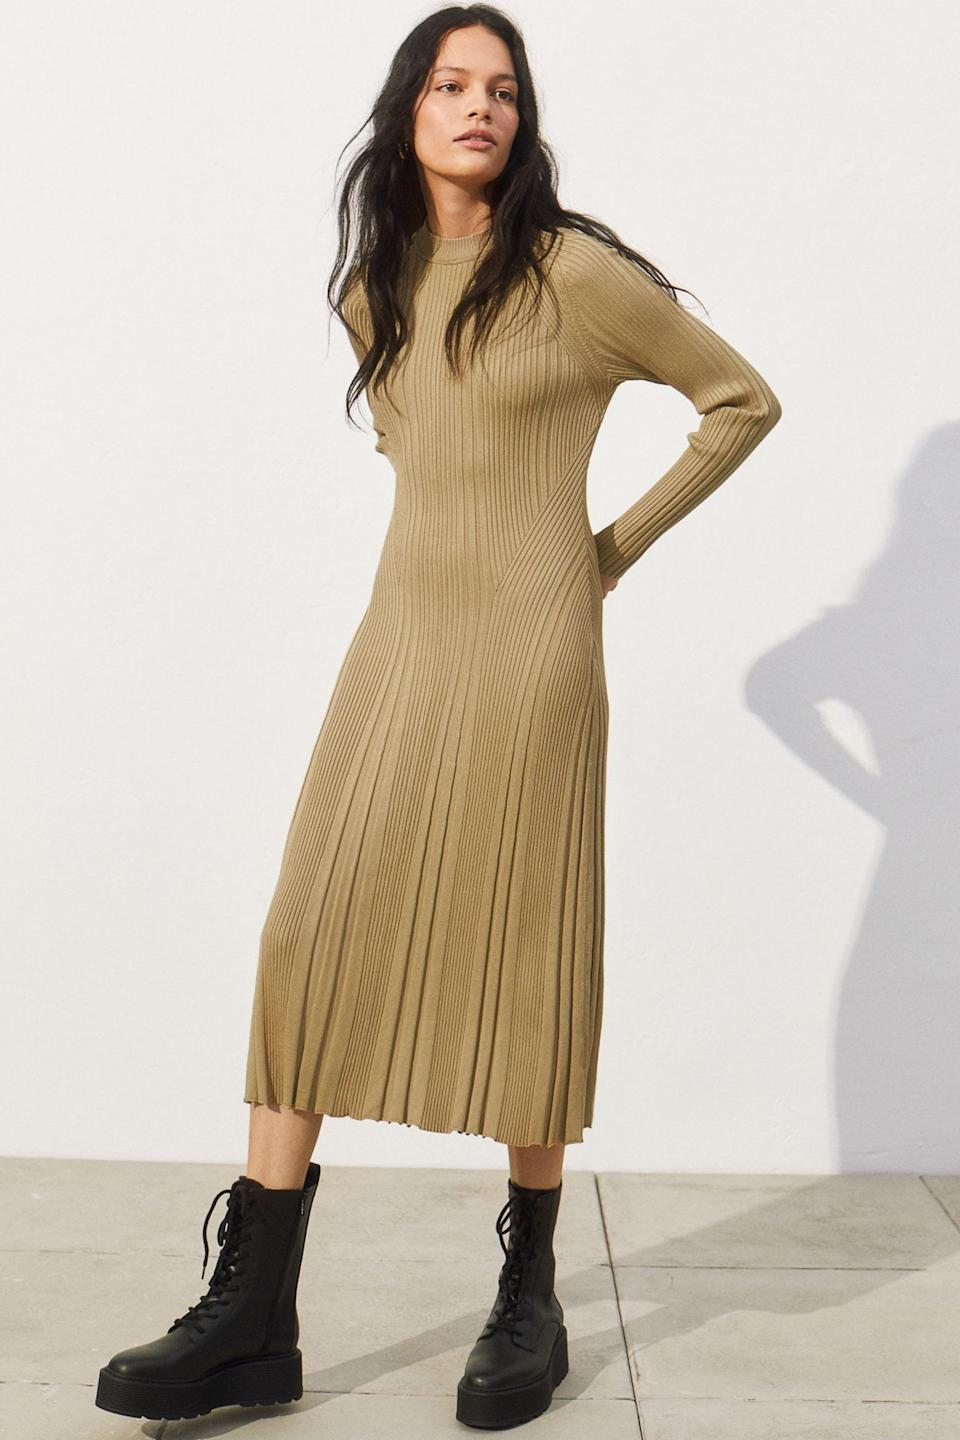 <p>This stunning <span>Ribbed Dress</span> ($56, originally $70) is a polished, subtly sexy choice for your upcoming hangs.</p>